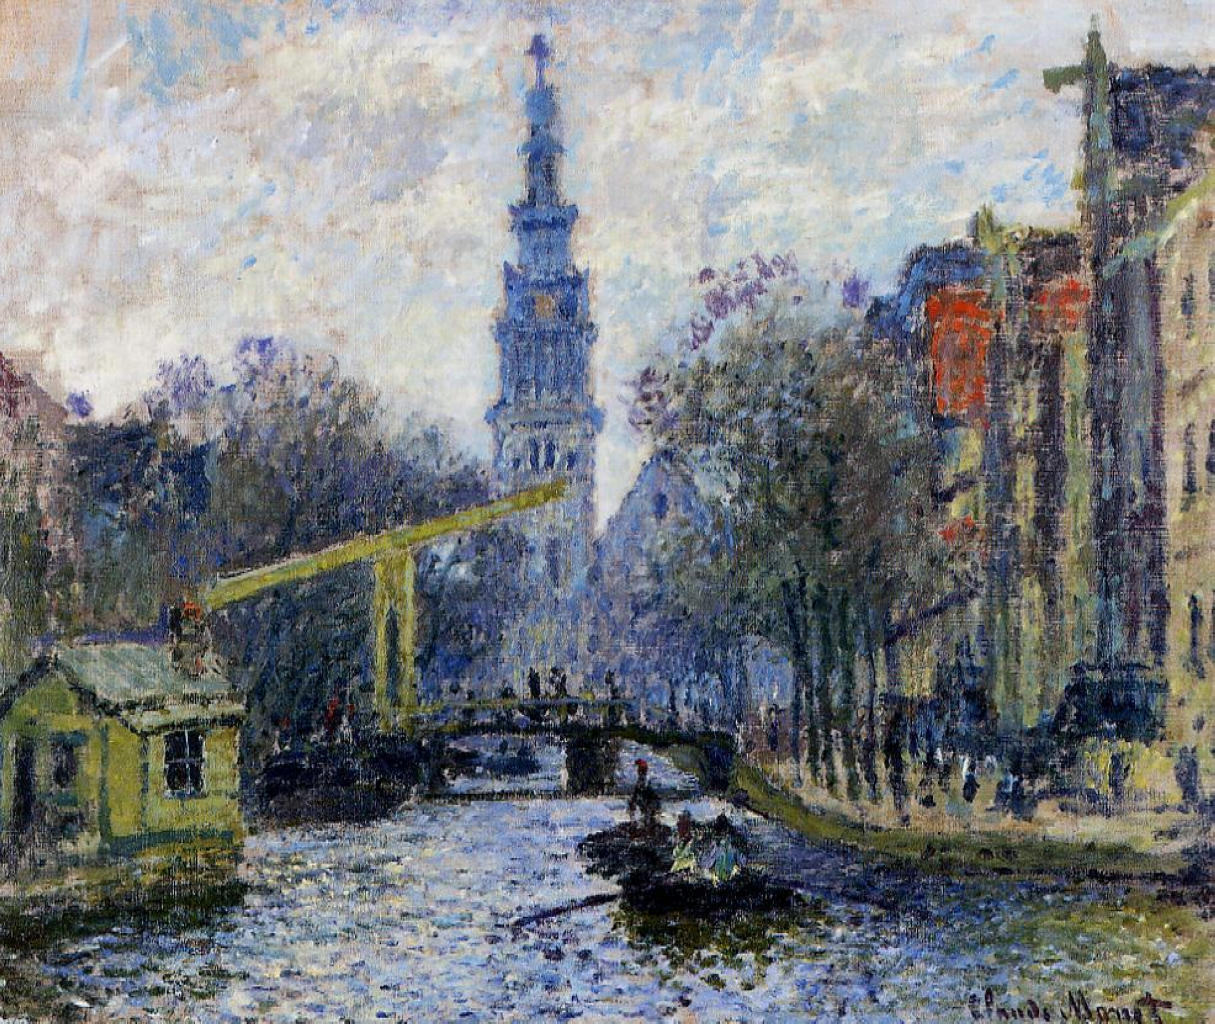 Claude Monet - Canal in Amsterdam 1874